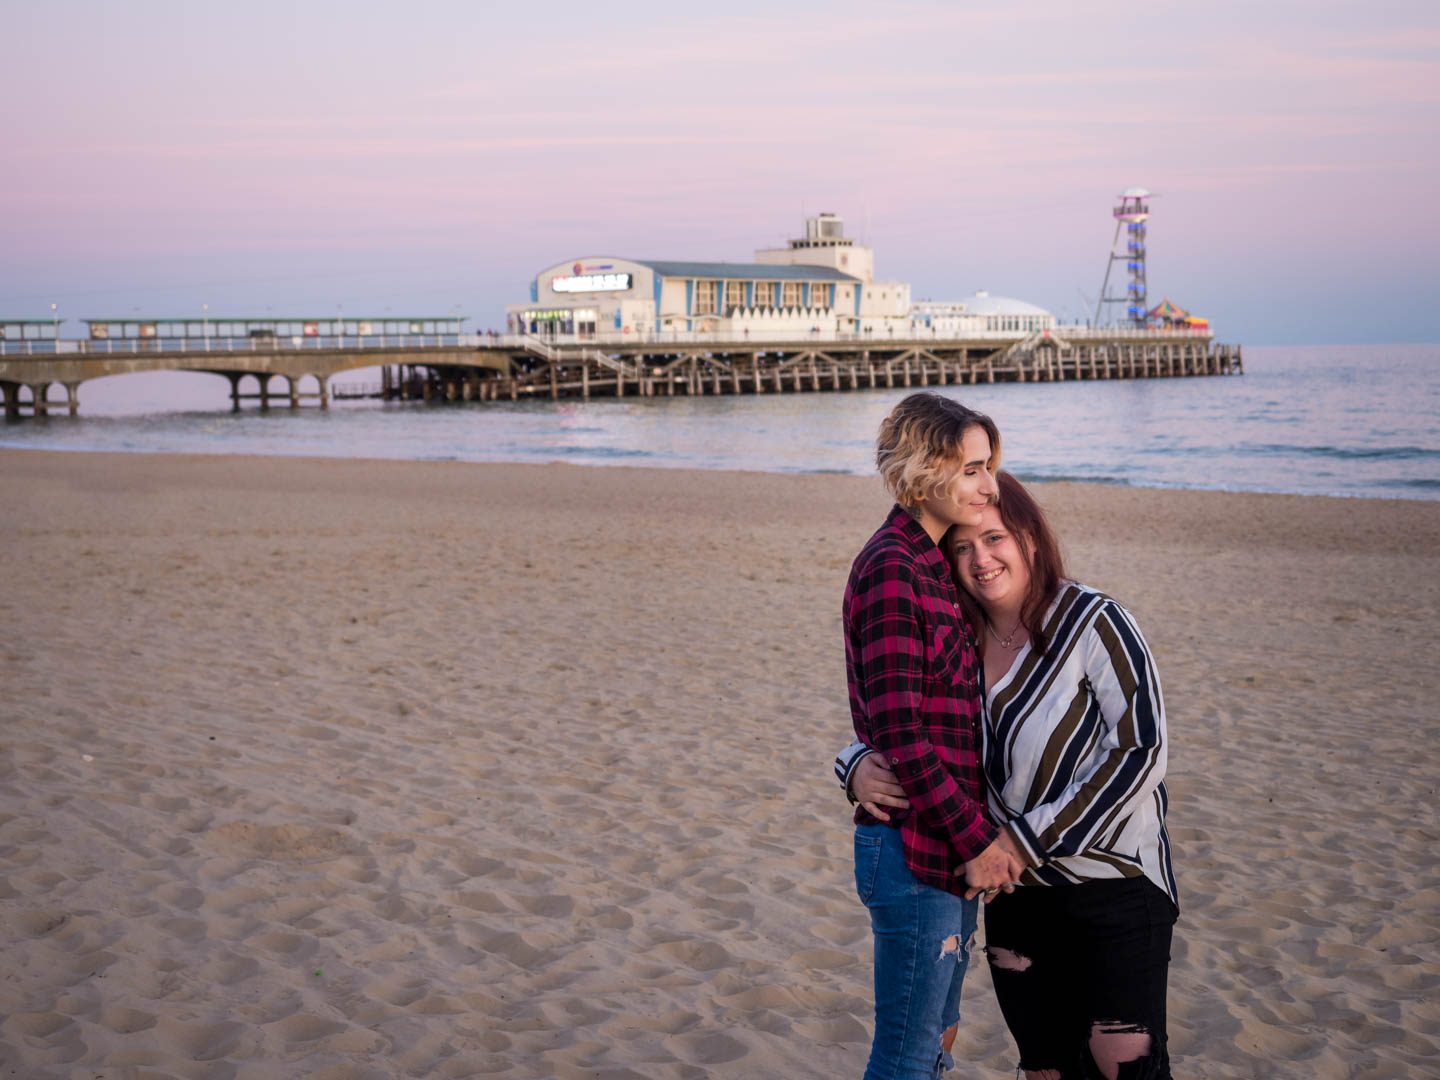 Lesbian couple embrace at dusk, with Bournemouth Pier in the background